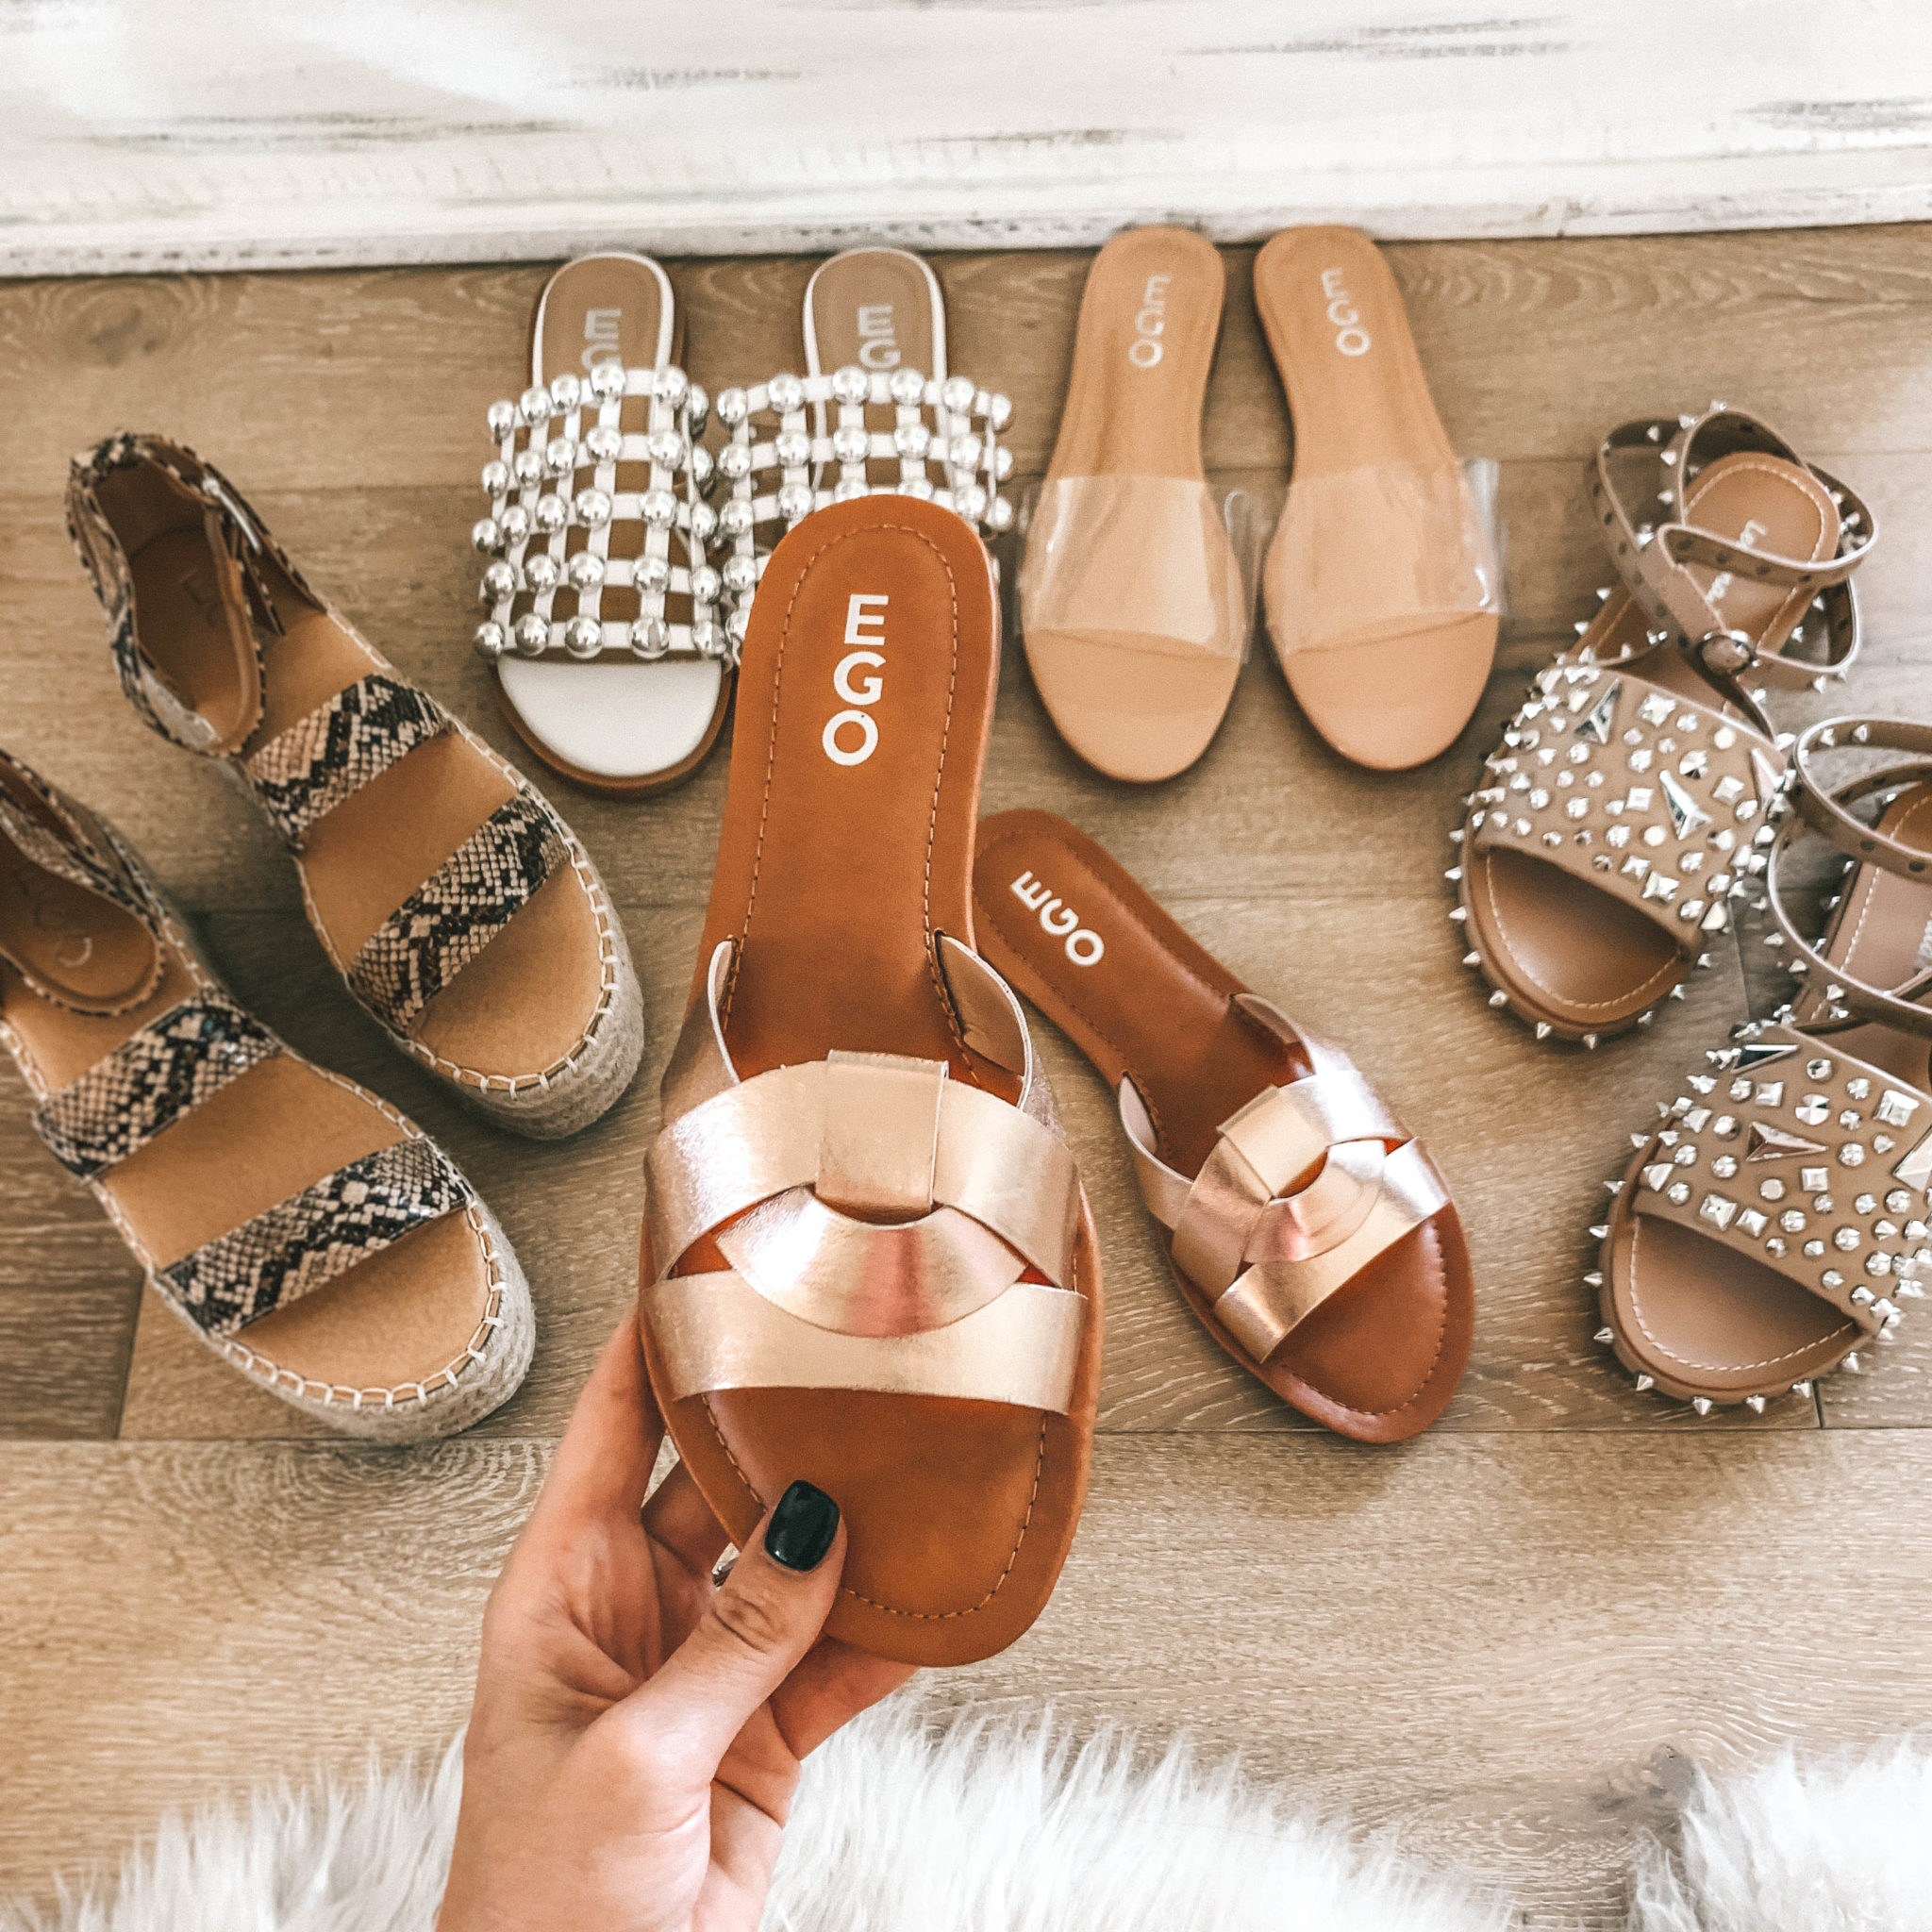 5 Must Have Affordable EGO Sandals for Summer by popular Austin fashion blog, Dressed to Kill: image of woman holding EGO sandals Billie Flat Sandal In Rose Gold Faux Leather.